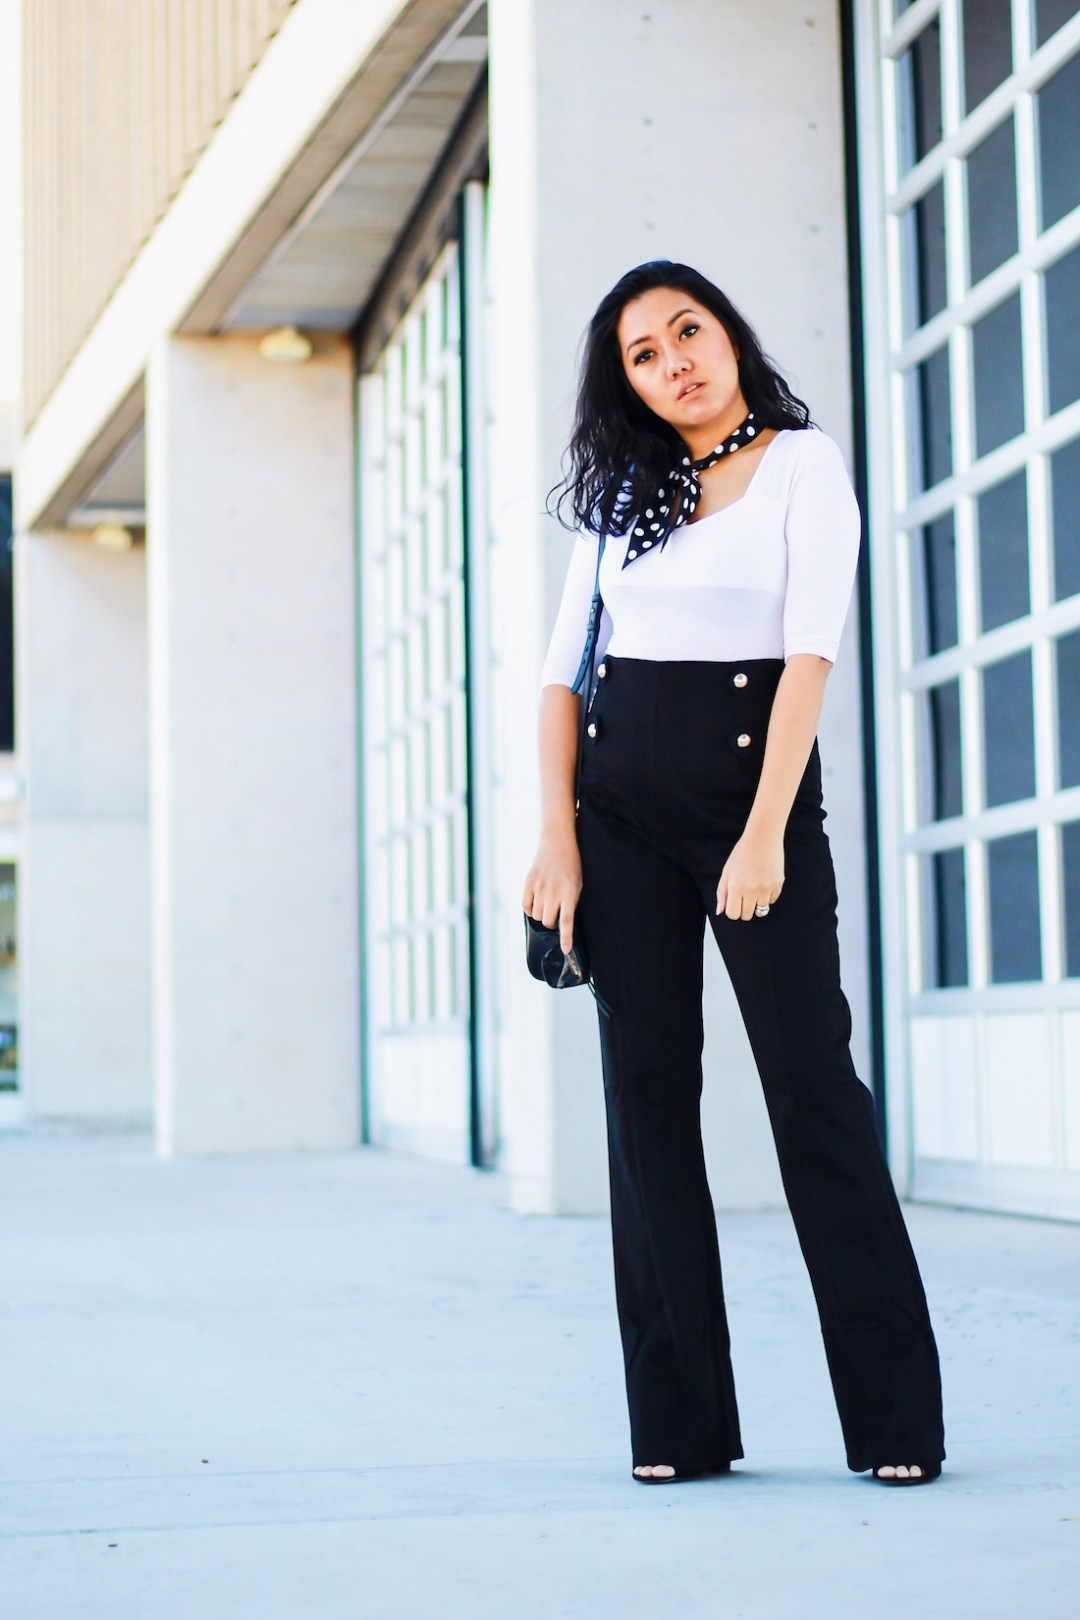 Spring Outfit ISpring Outfit Ideas | Transform to A Spring Look One Easy Tip Three Ways | Allaboutgoodvibes.com | Instagram @thevibescloset | Molly Larsen | Fashion and Lifestyle Blogger